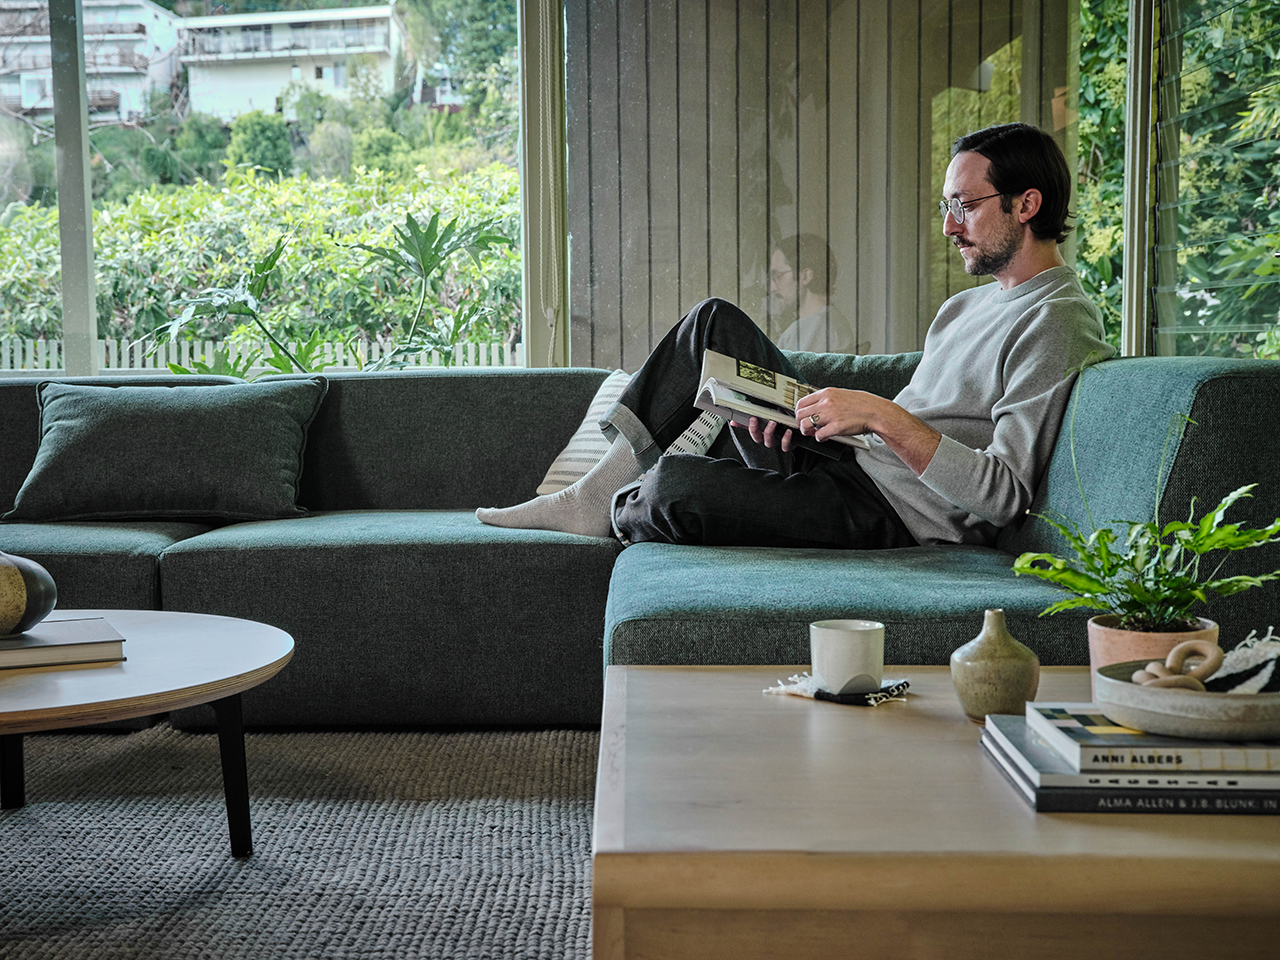 sectional sofa in living space with man